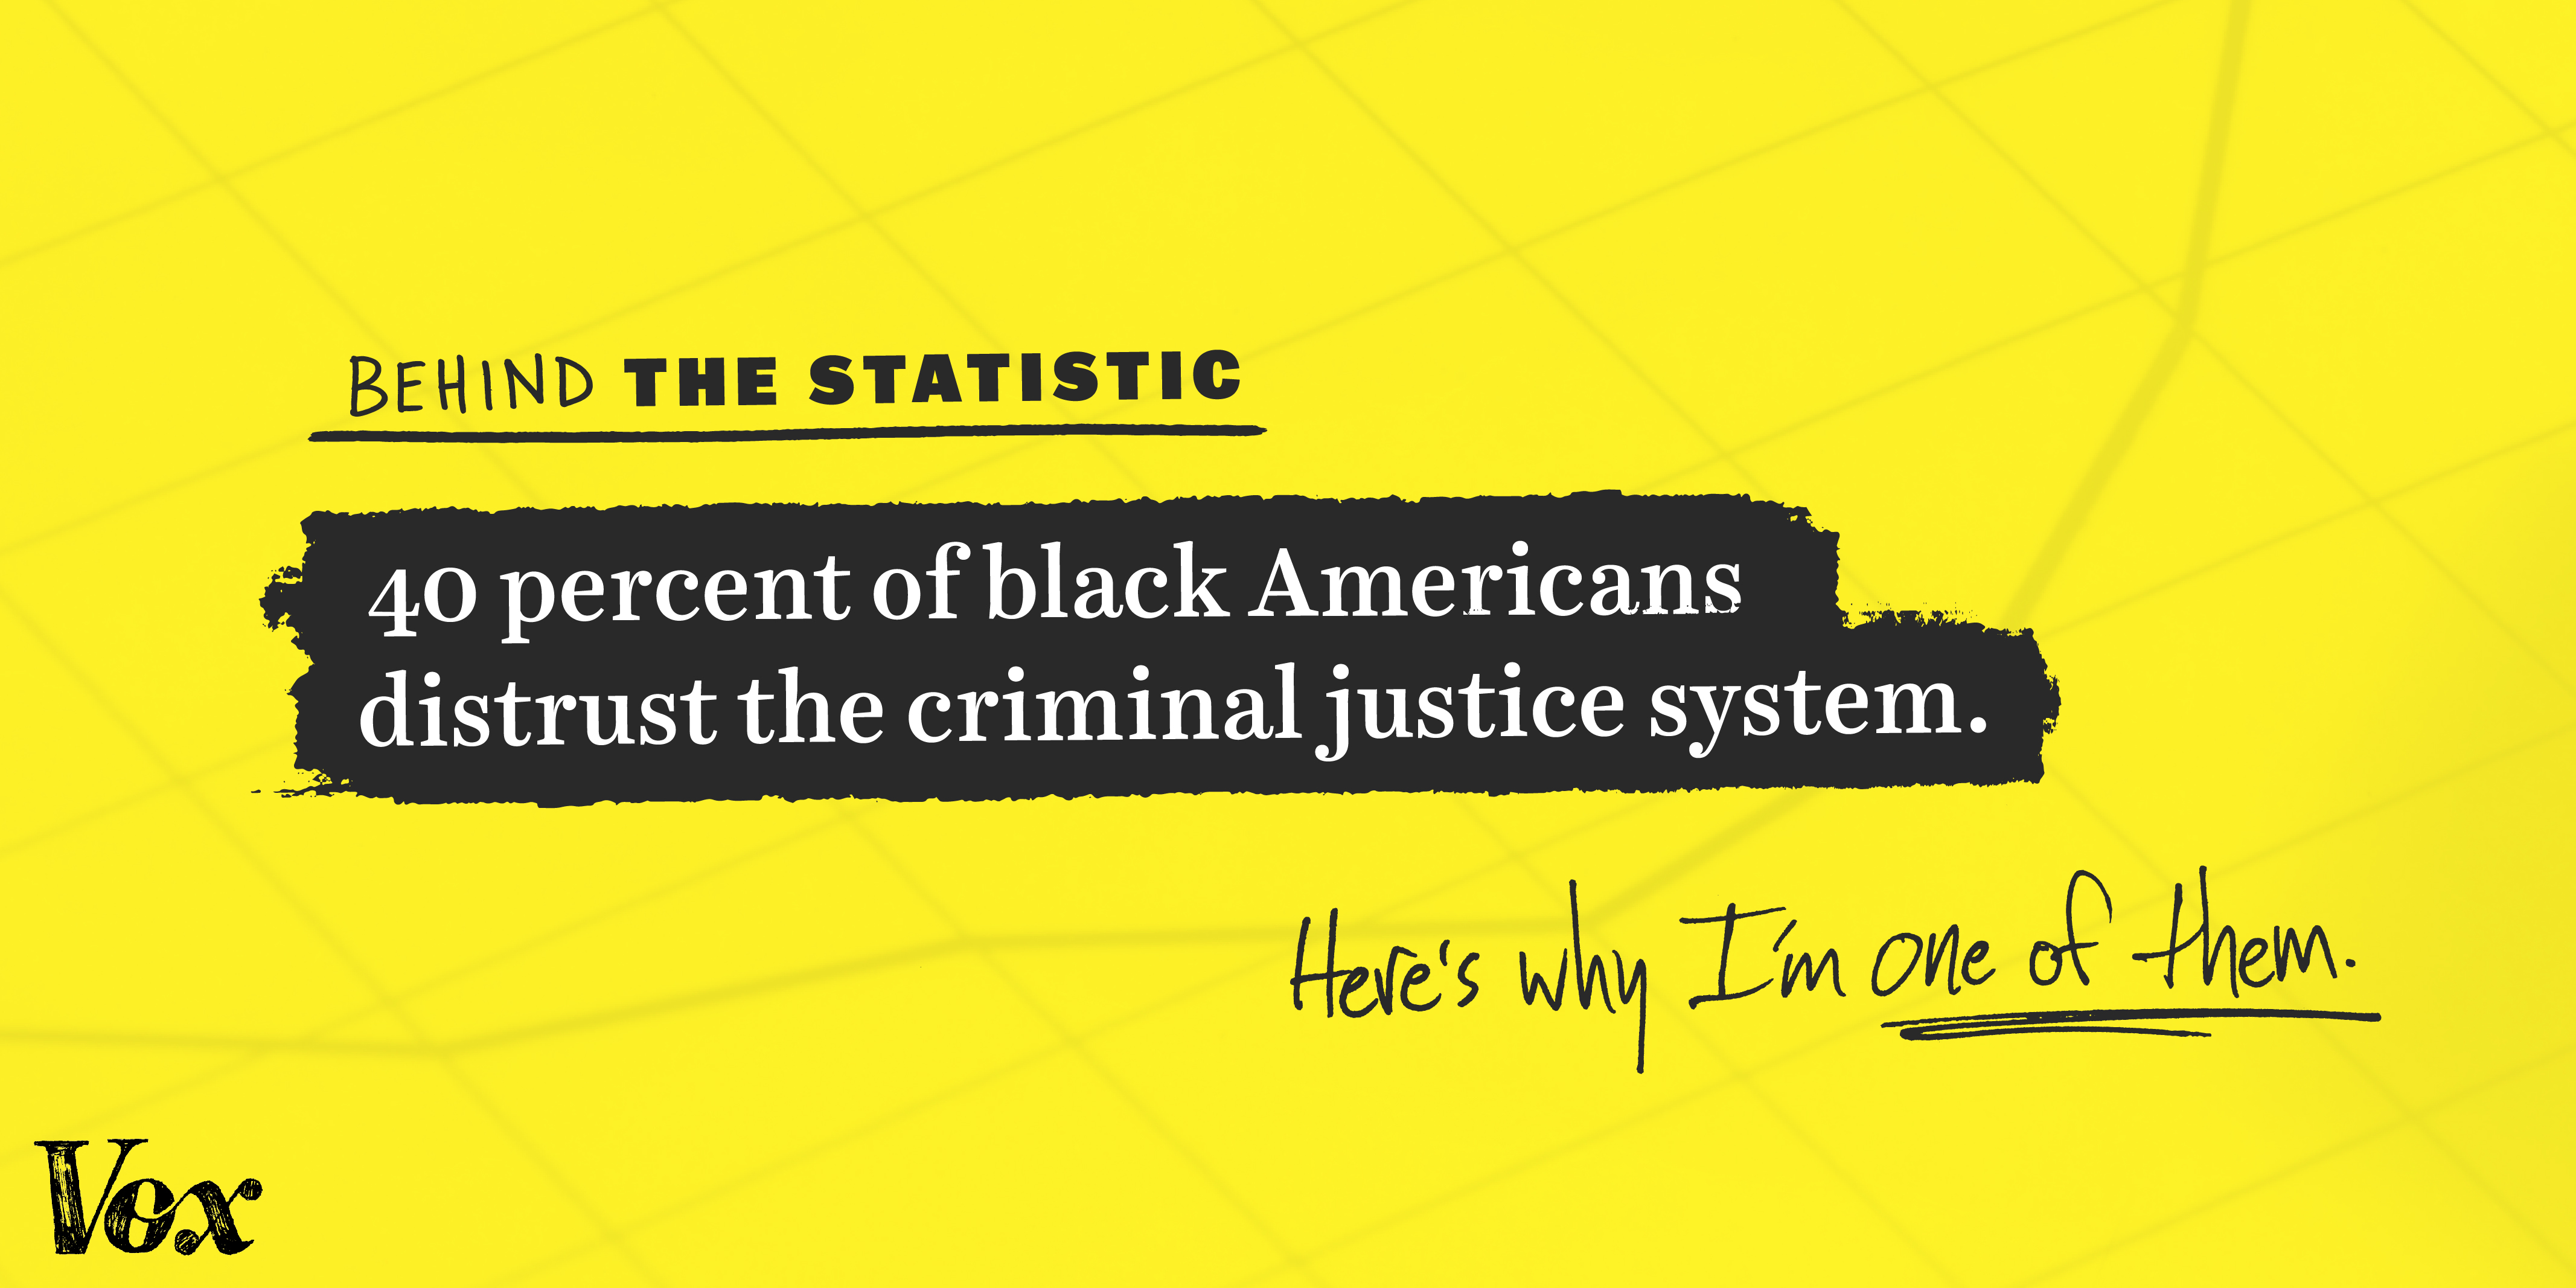 40 percent of black Americans distrust the criminal justice system: Why I'm one of them